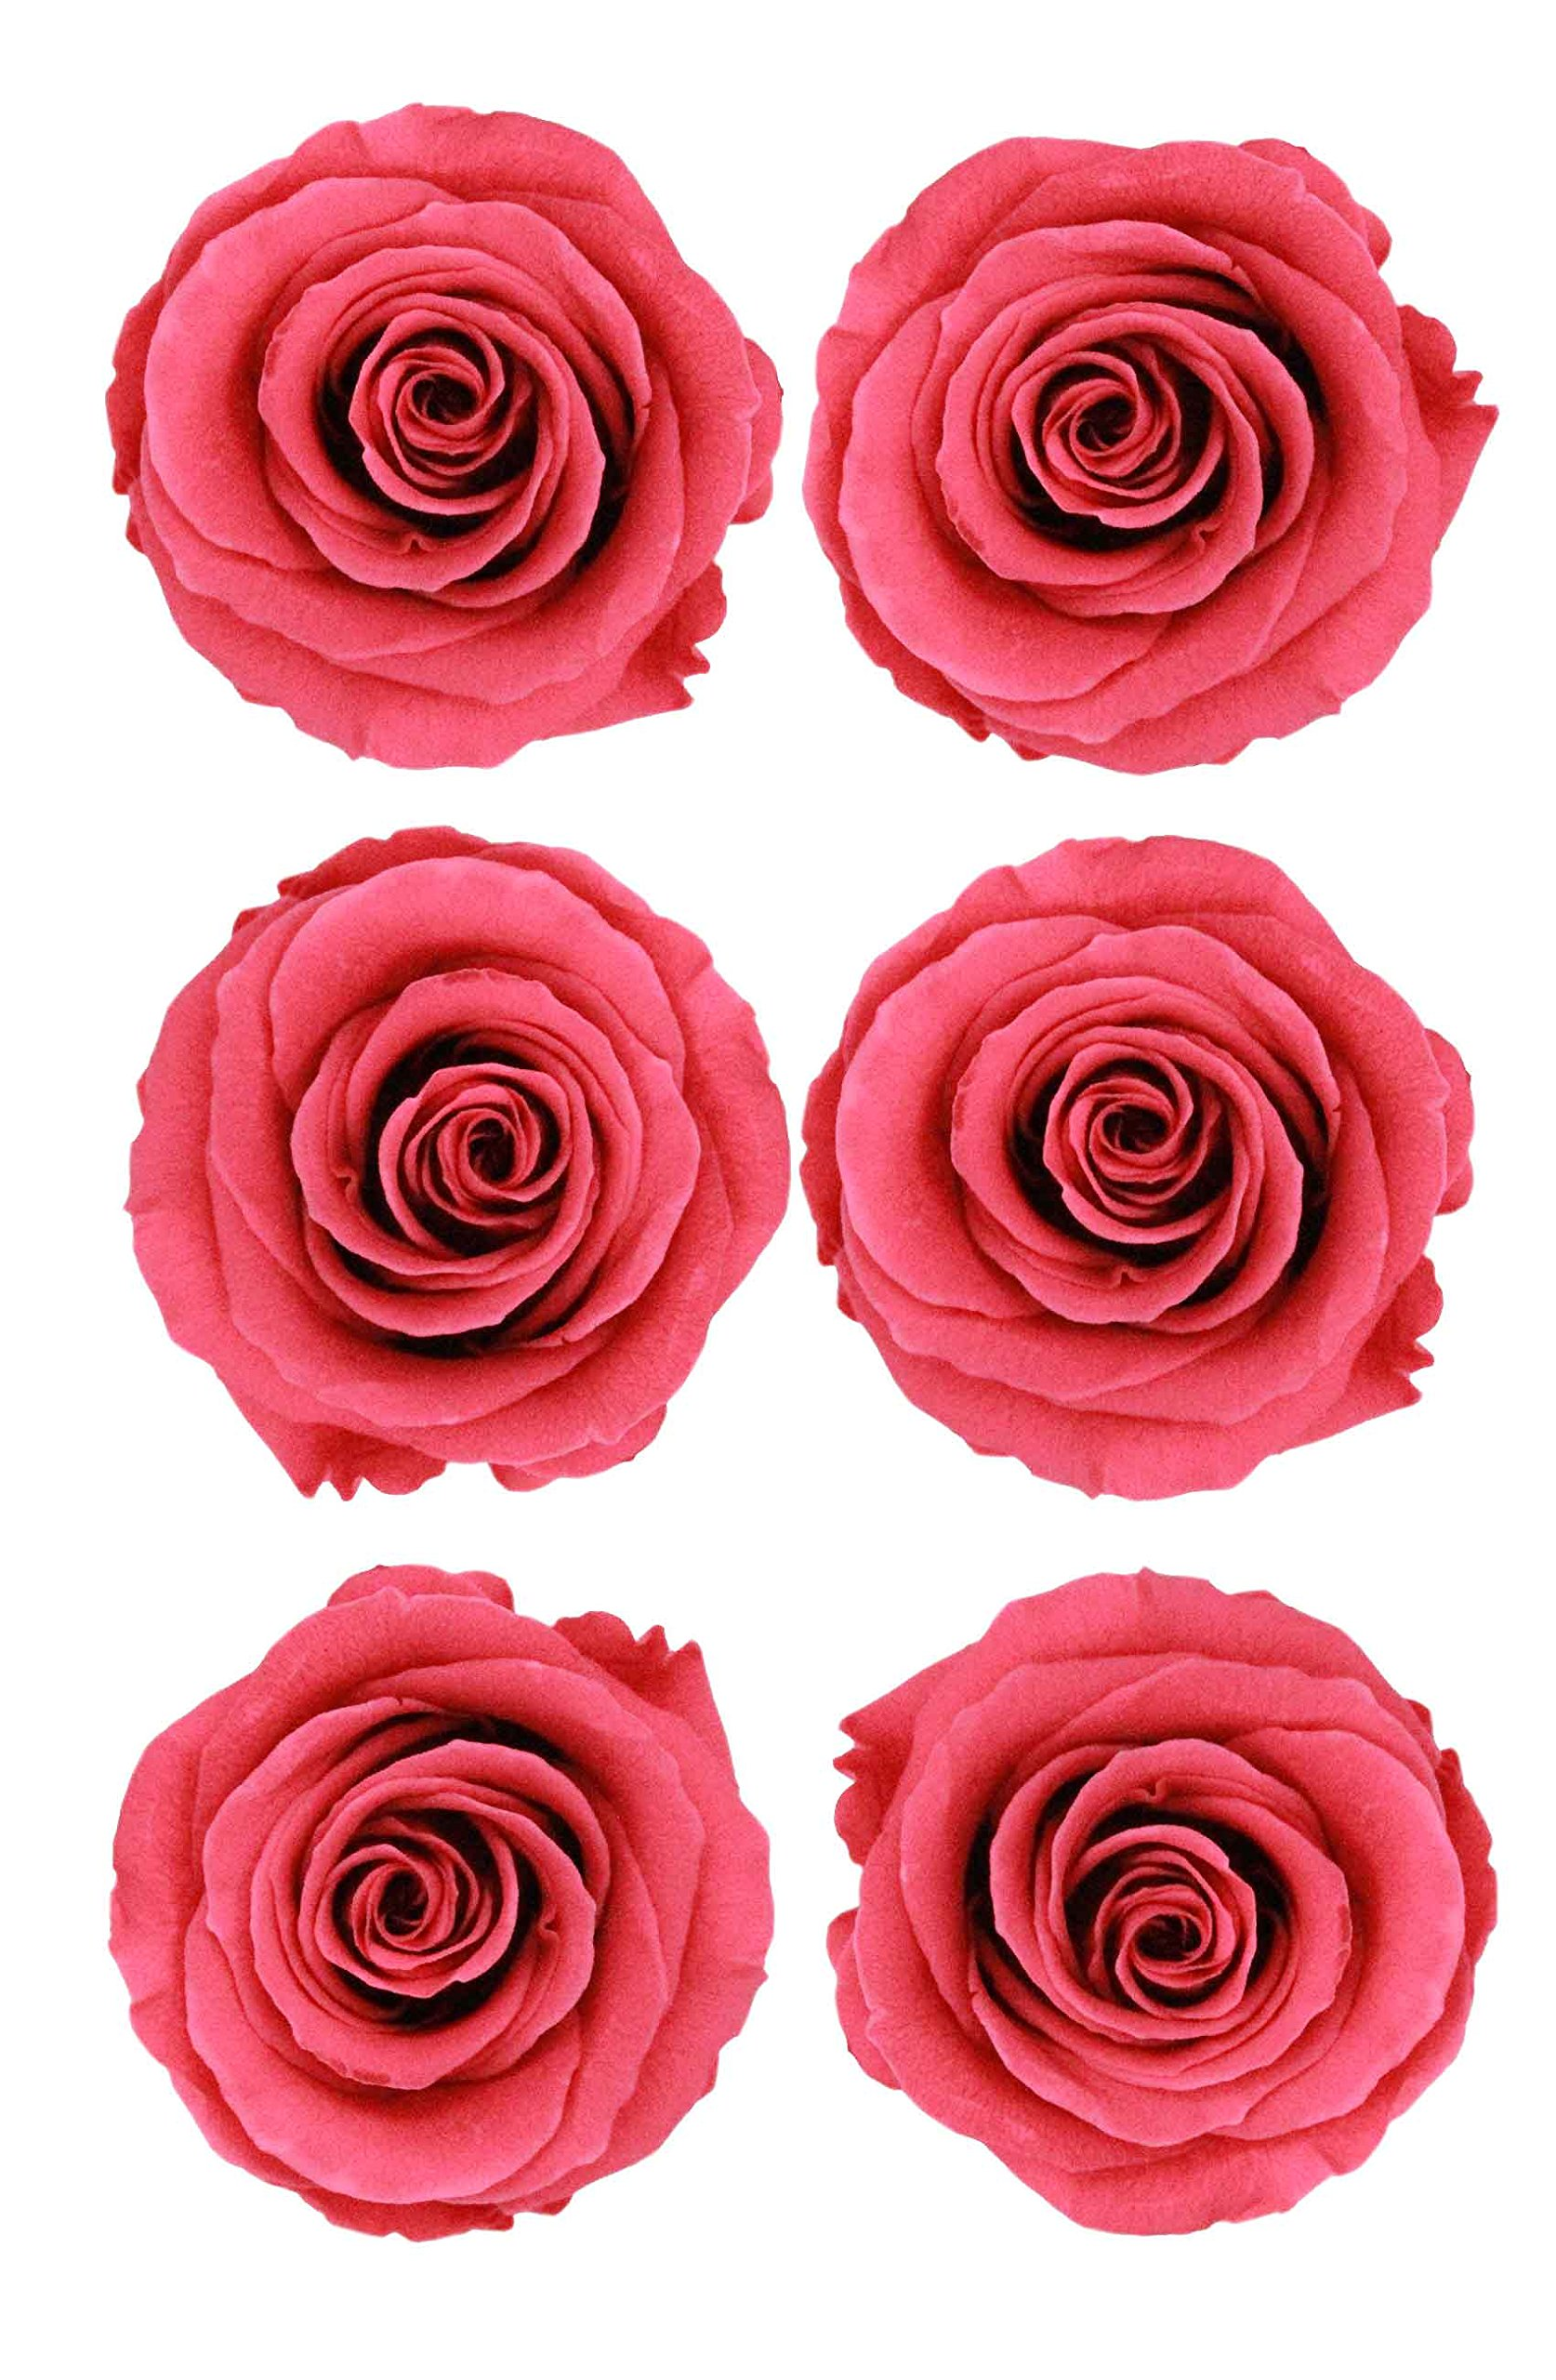 ROSA DORMANT Preserved Roses | Natural Roses that last for Months - Enchanted Dark Pink Roses | Used by Enthusiast Florists instead of Artificial Roses | Alternative Fresh Cut Rose for delivery